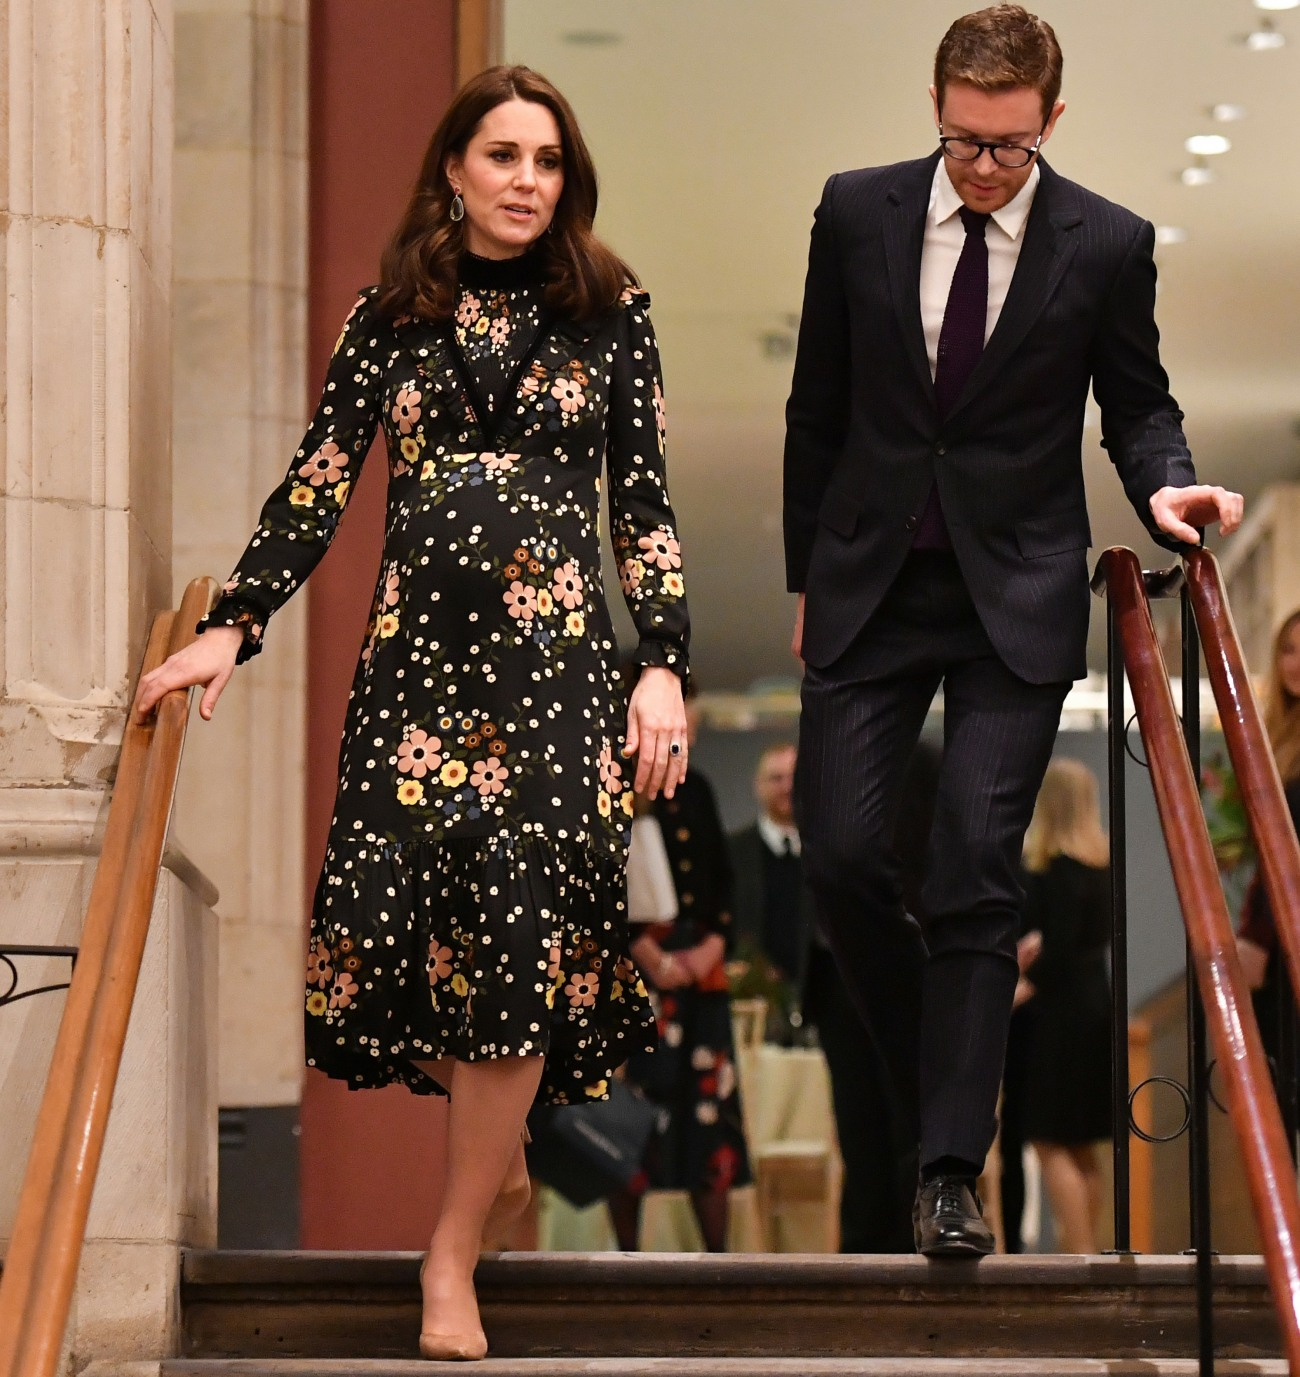 Britain's Catherine, Duchess of Cambridge leaves after her visit to the exhibition, 'Victorian Giants: The Birth of Art Photography' at the National Portrait Gallery in central London on Februaury 28, 2018, where she unveiled the Gallery's first Patron's Trail.